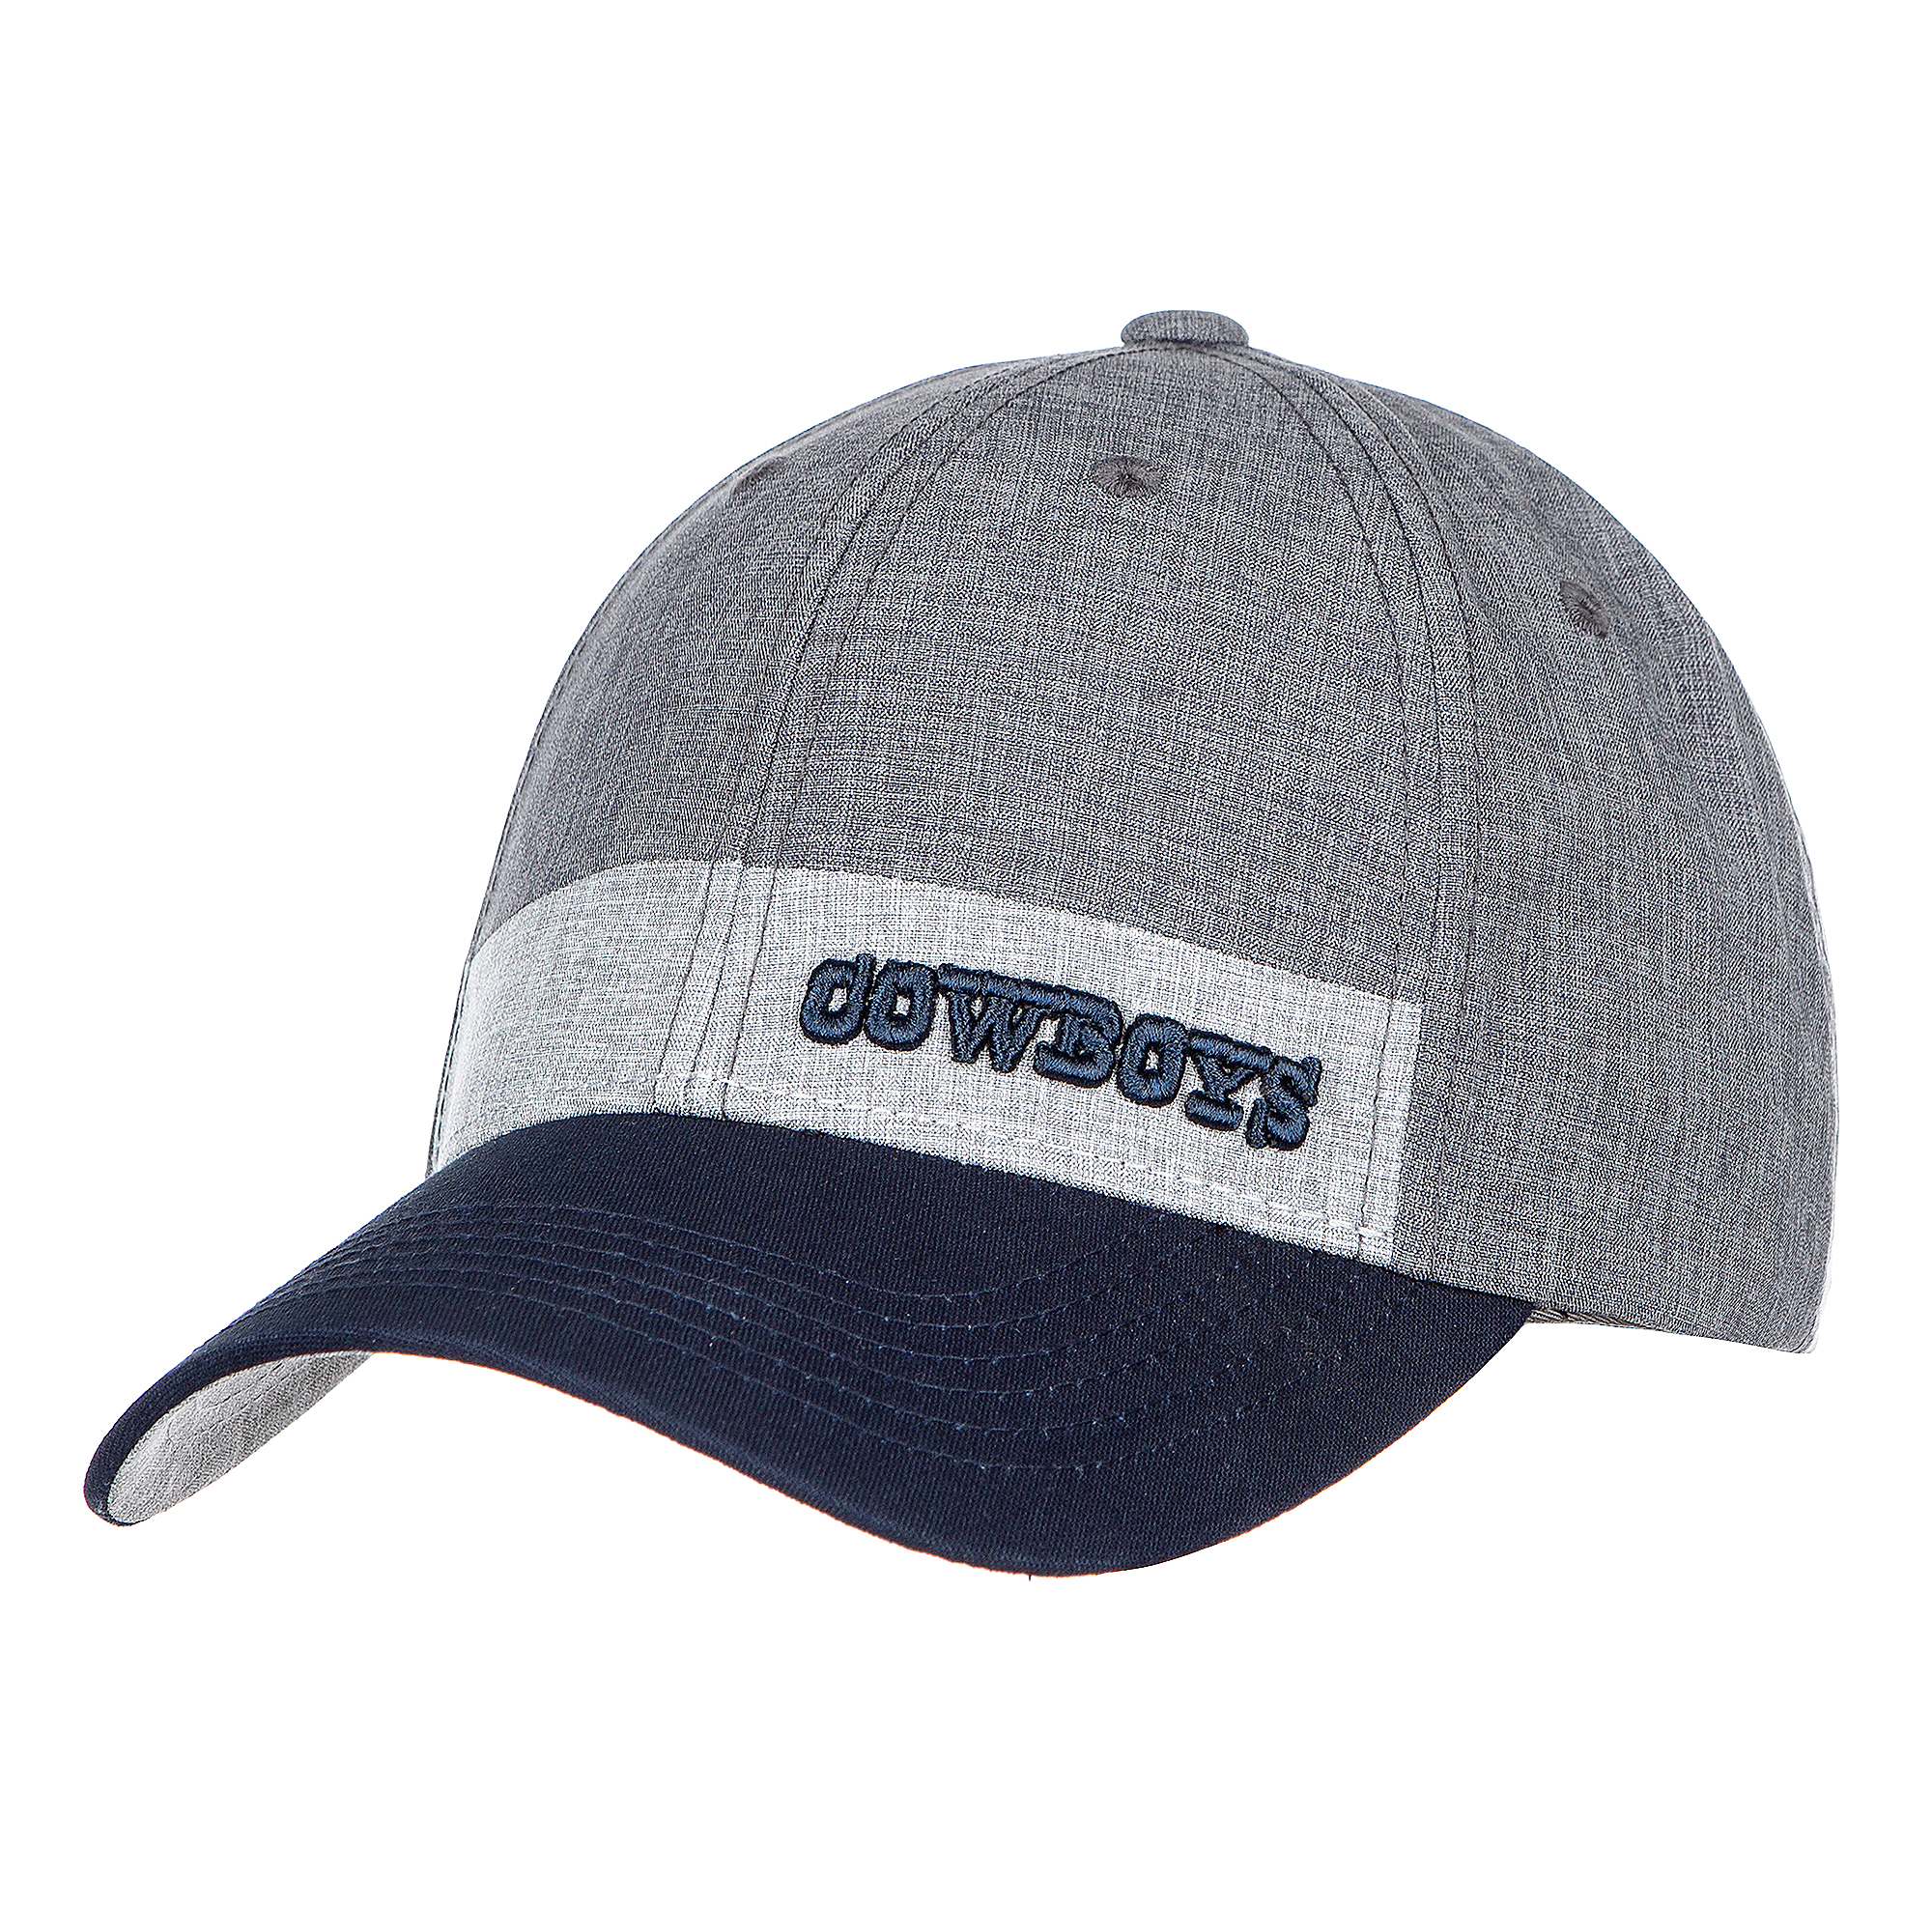 Dallas Cowboys Mens Pond Snapback Cap